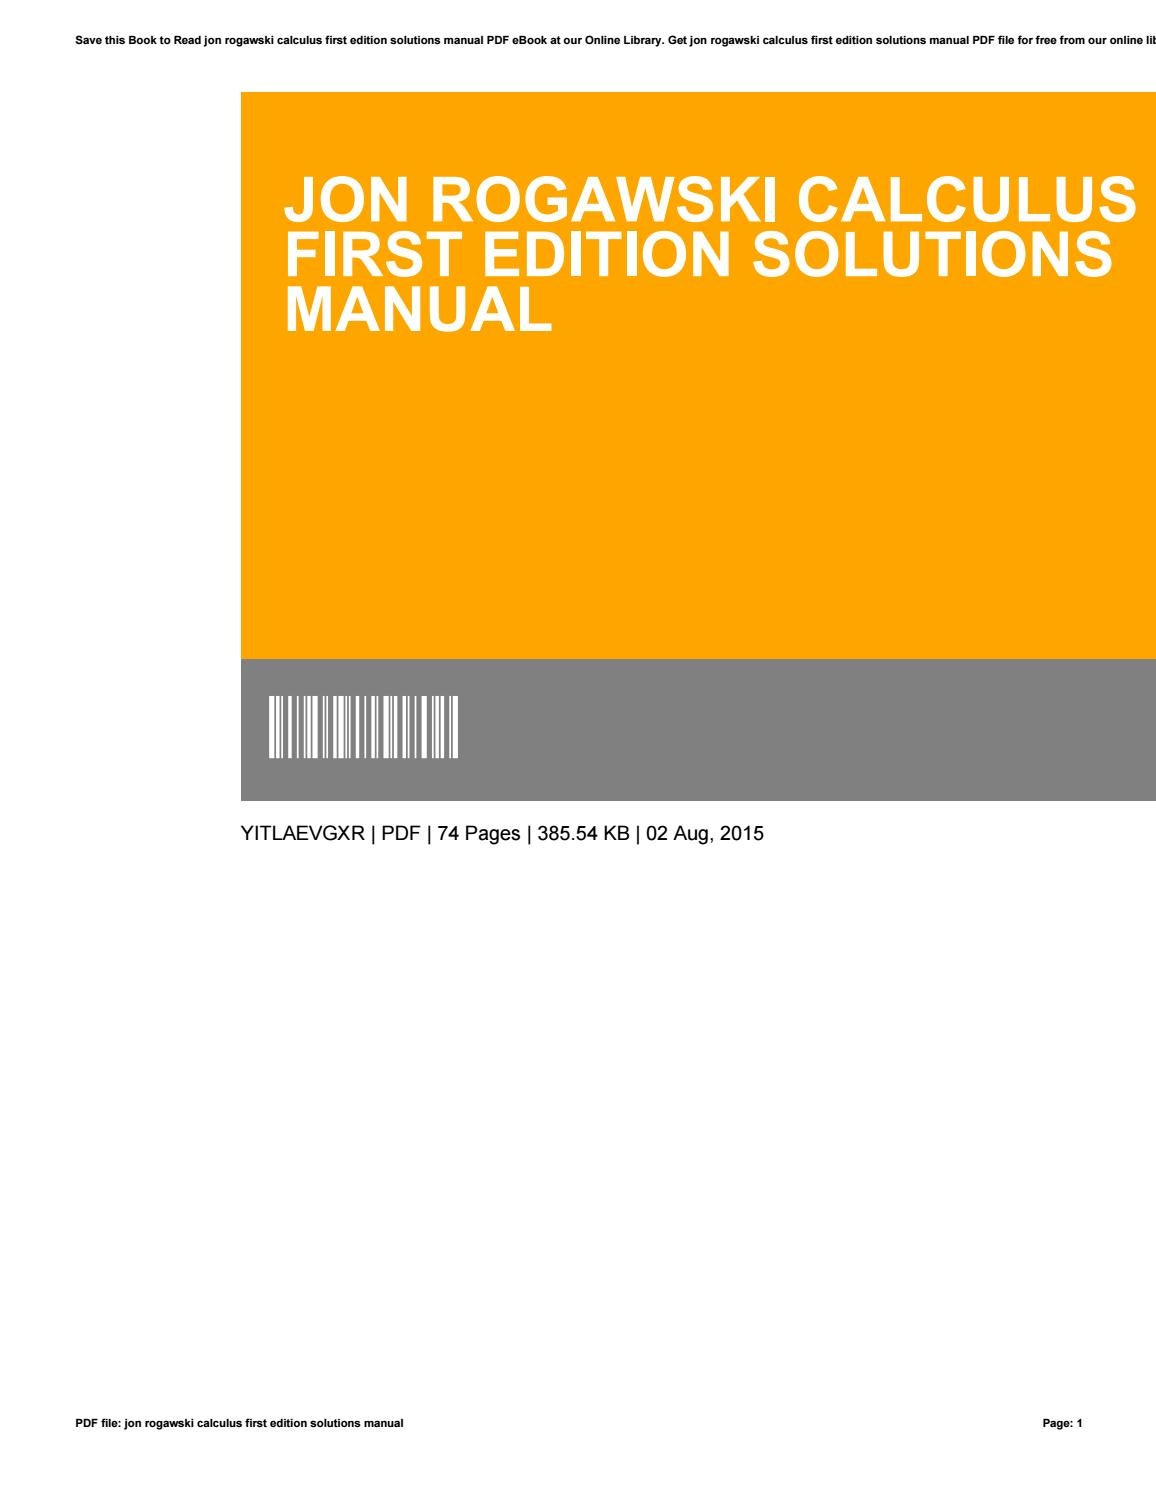 Jon rogawski calculus first edition solutions manual by PamelaRoberts1816 -  issuu